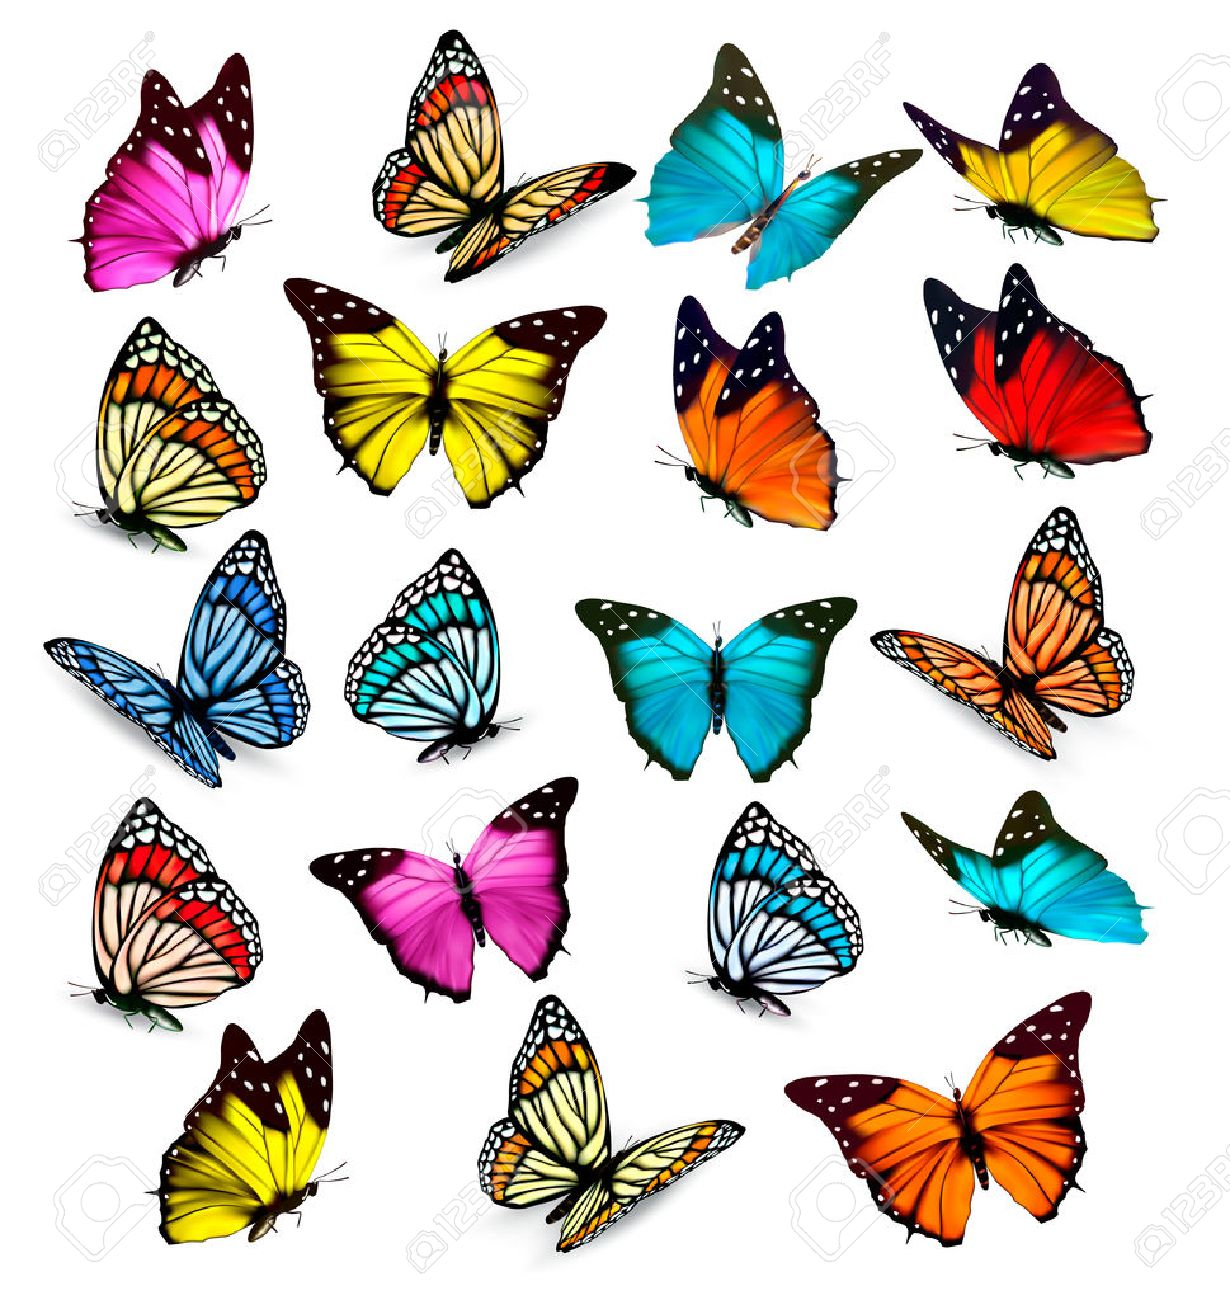 1230x1300 Big Collection Of Colorful Butterflies. Vector Royalty Free